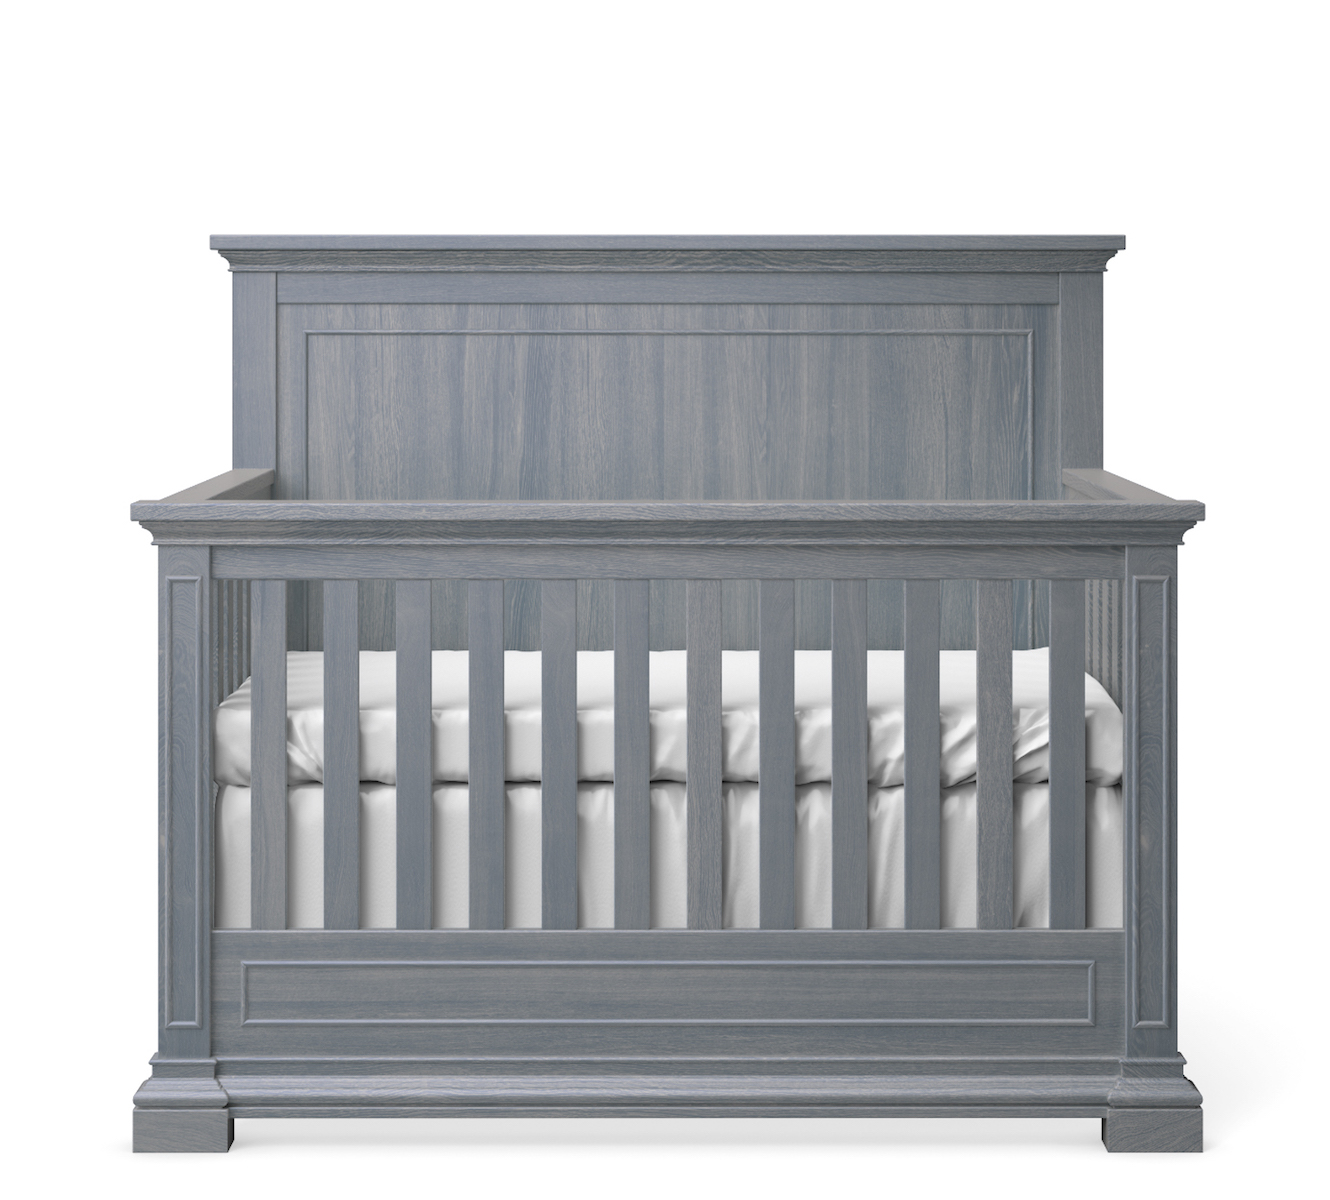 Silva Furniture Jackson Convertible Crib - Storm